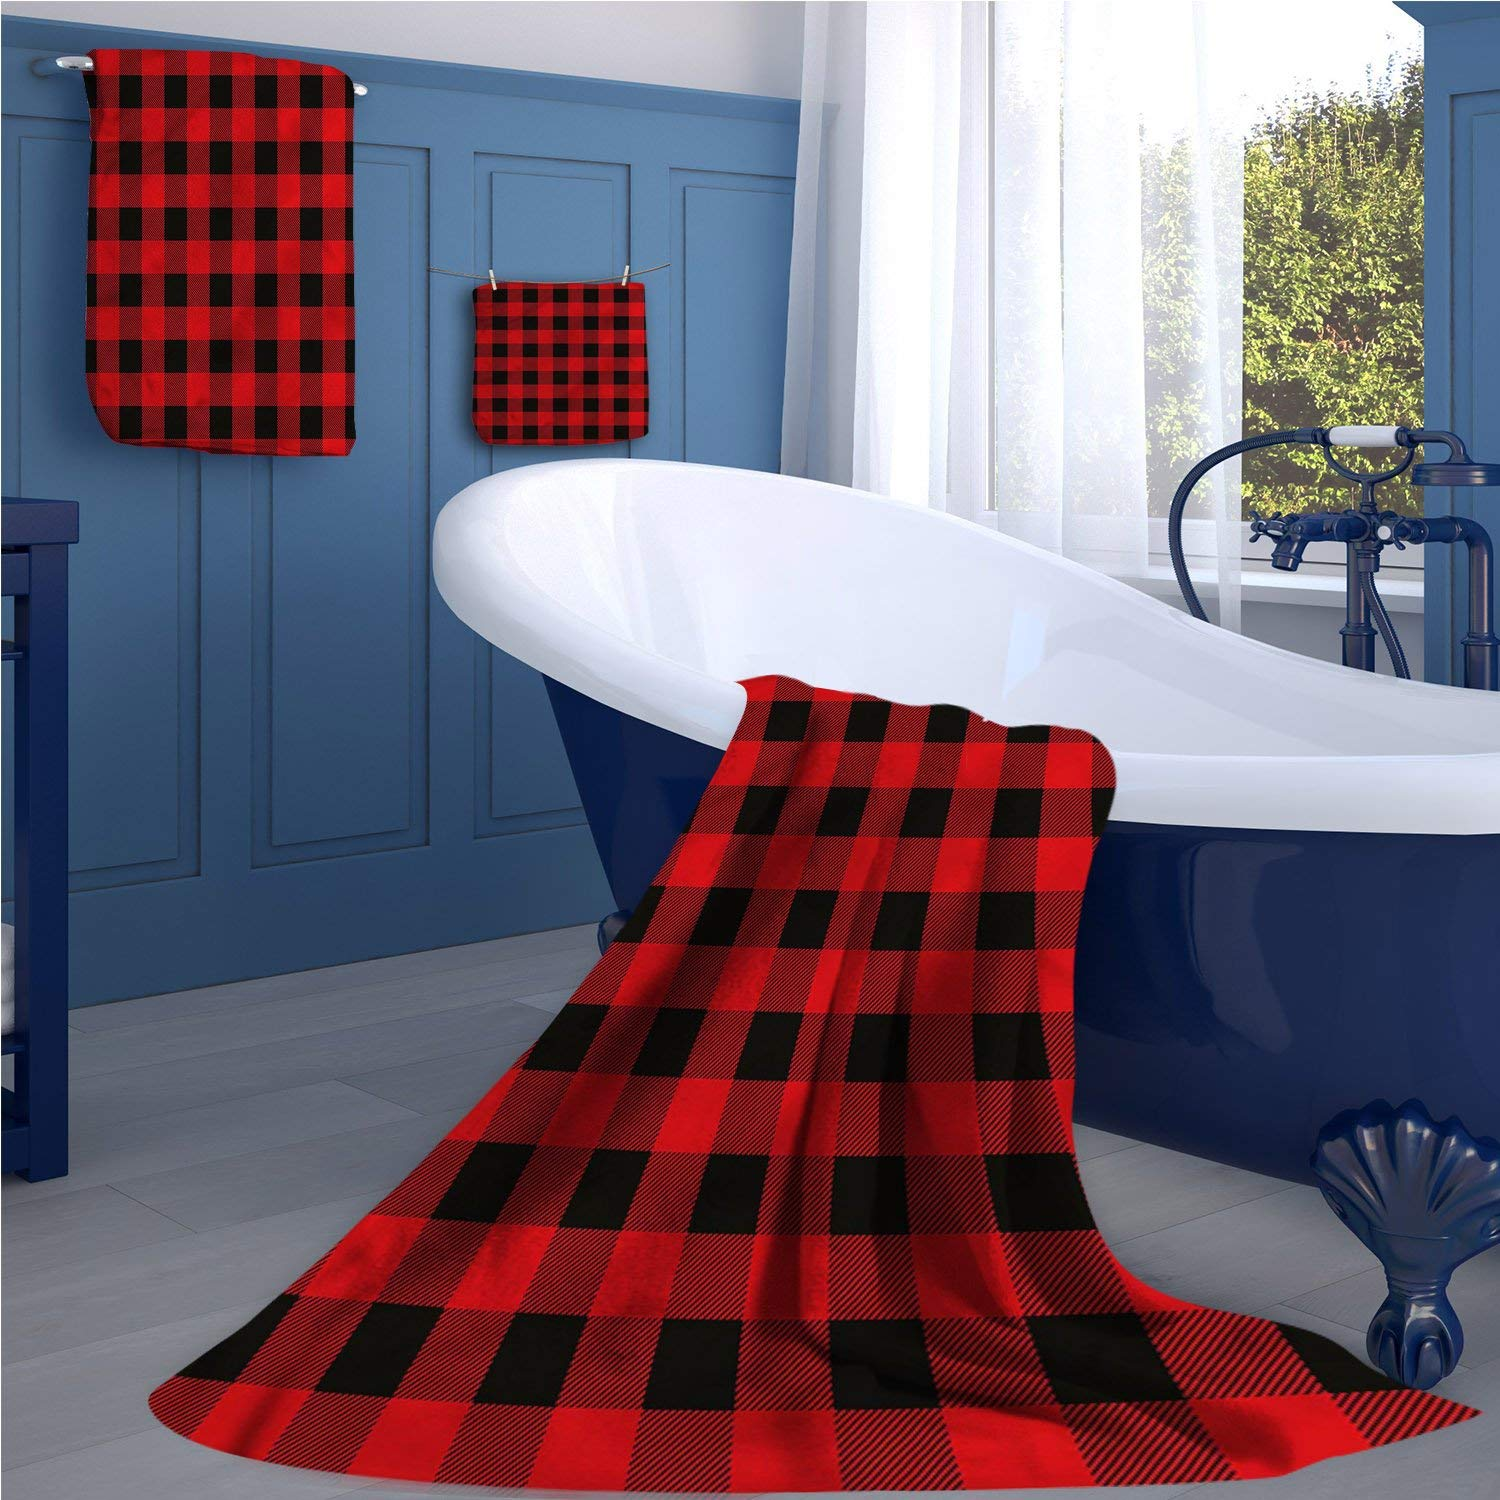 familytaste Plaid Extra wide bathroom accessories Lumberjack Fashion Buffalo Style Checks Pattern Retro Style with Grid Composition luxury hand towels set Scarlet Black